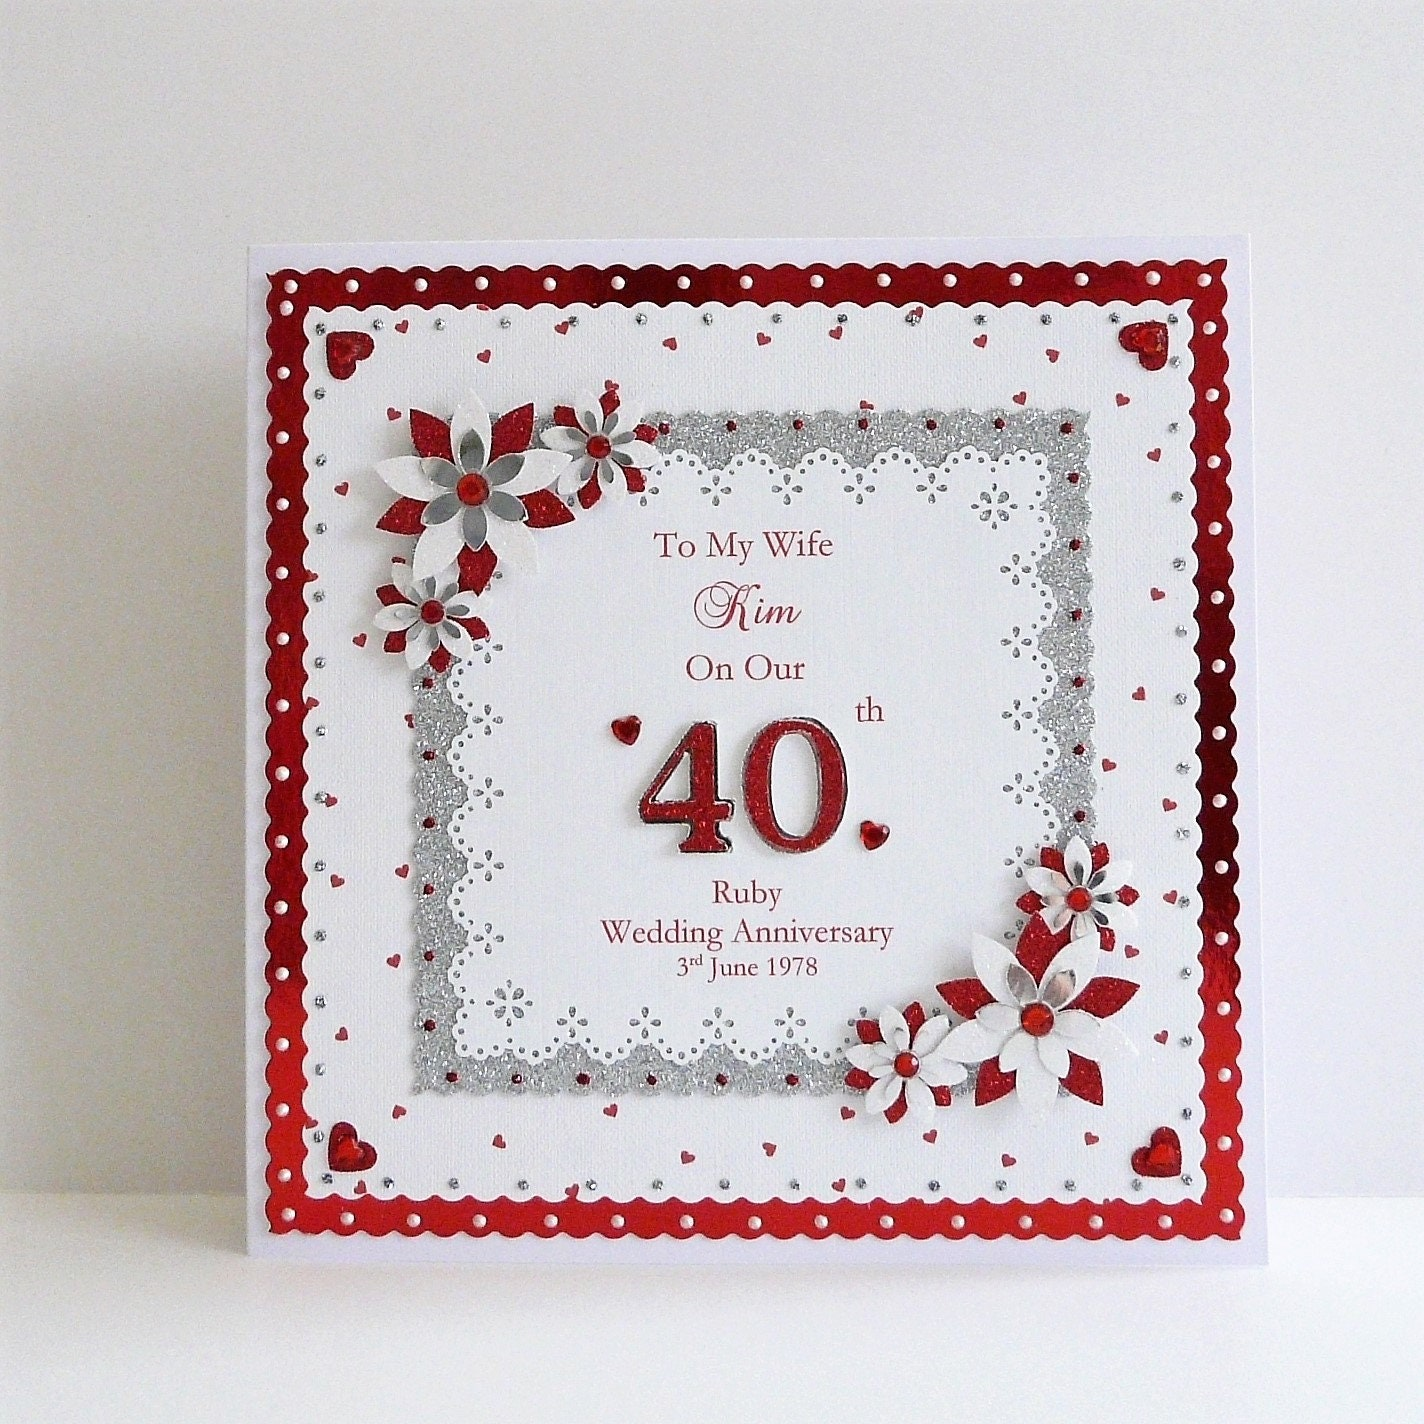 40th Wedding Anniversary Gifts For Wife: 40th Ruby Wedding Anniversary Card Wife/Husband/Mum Dad